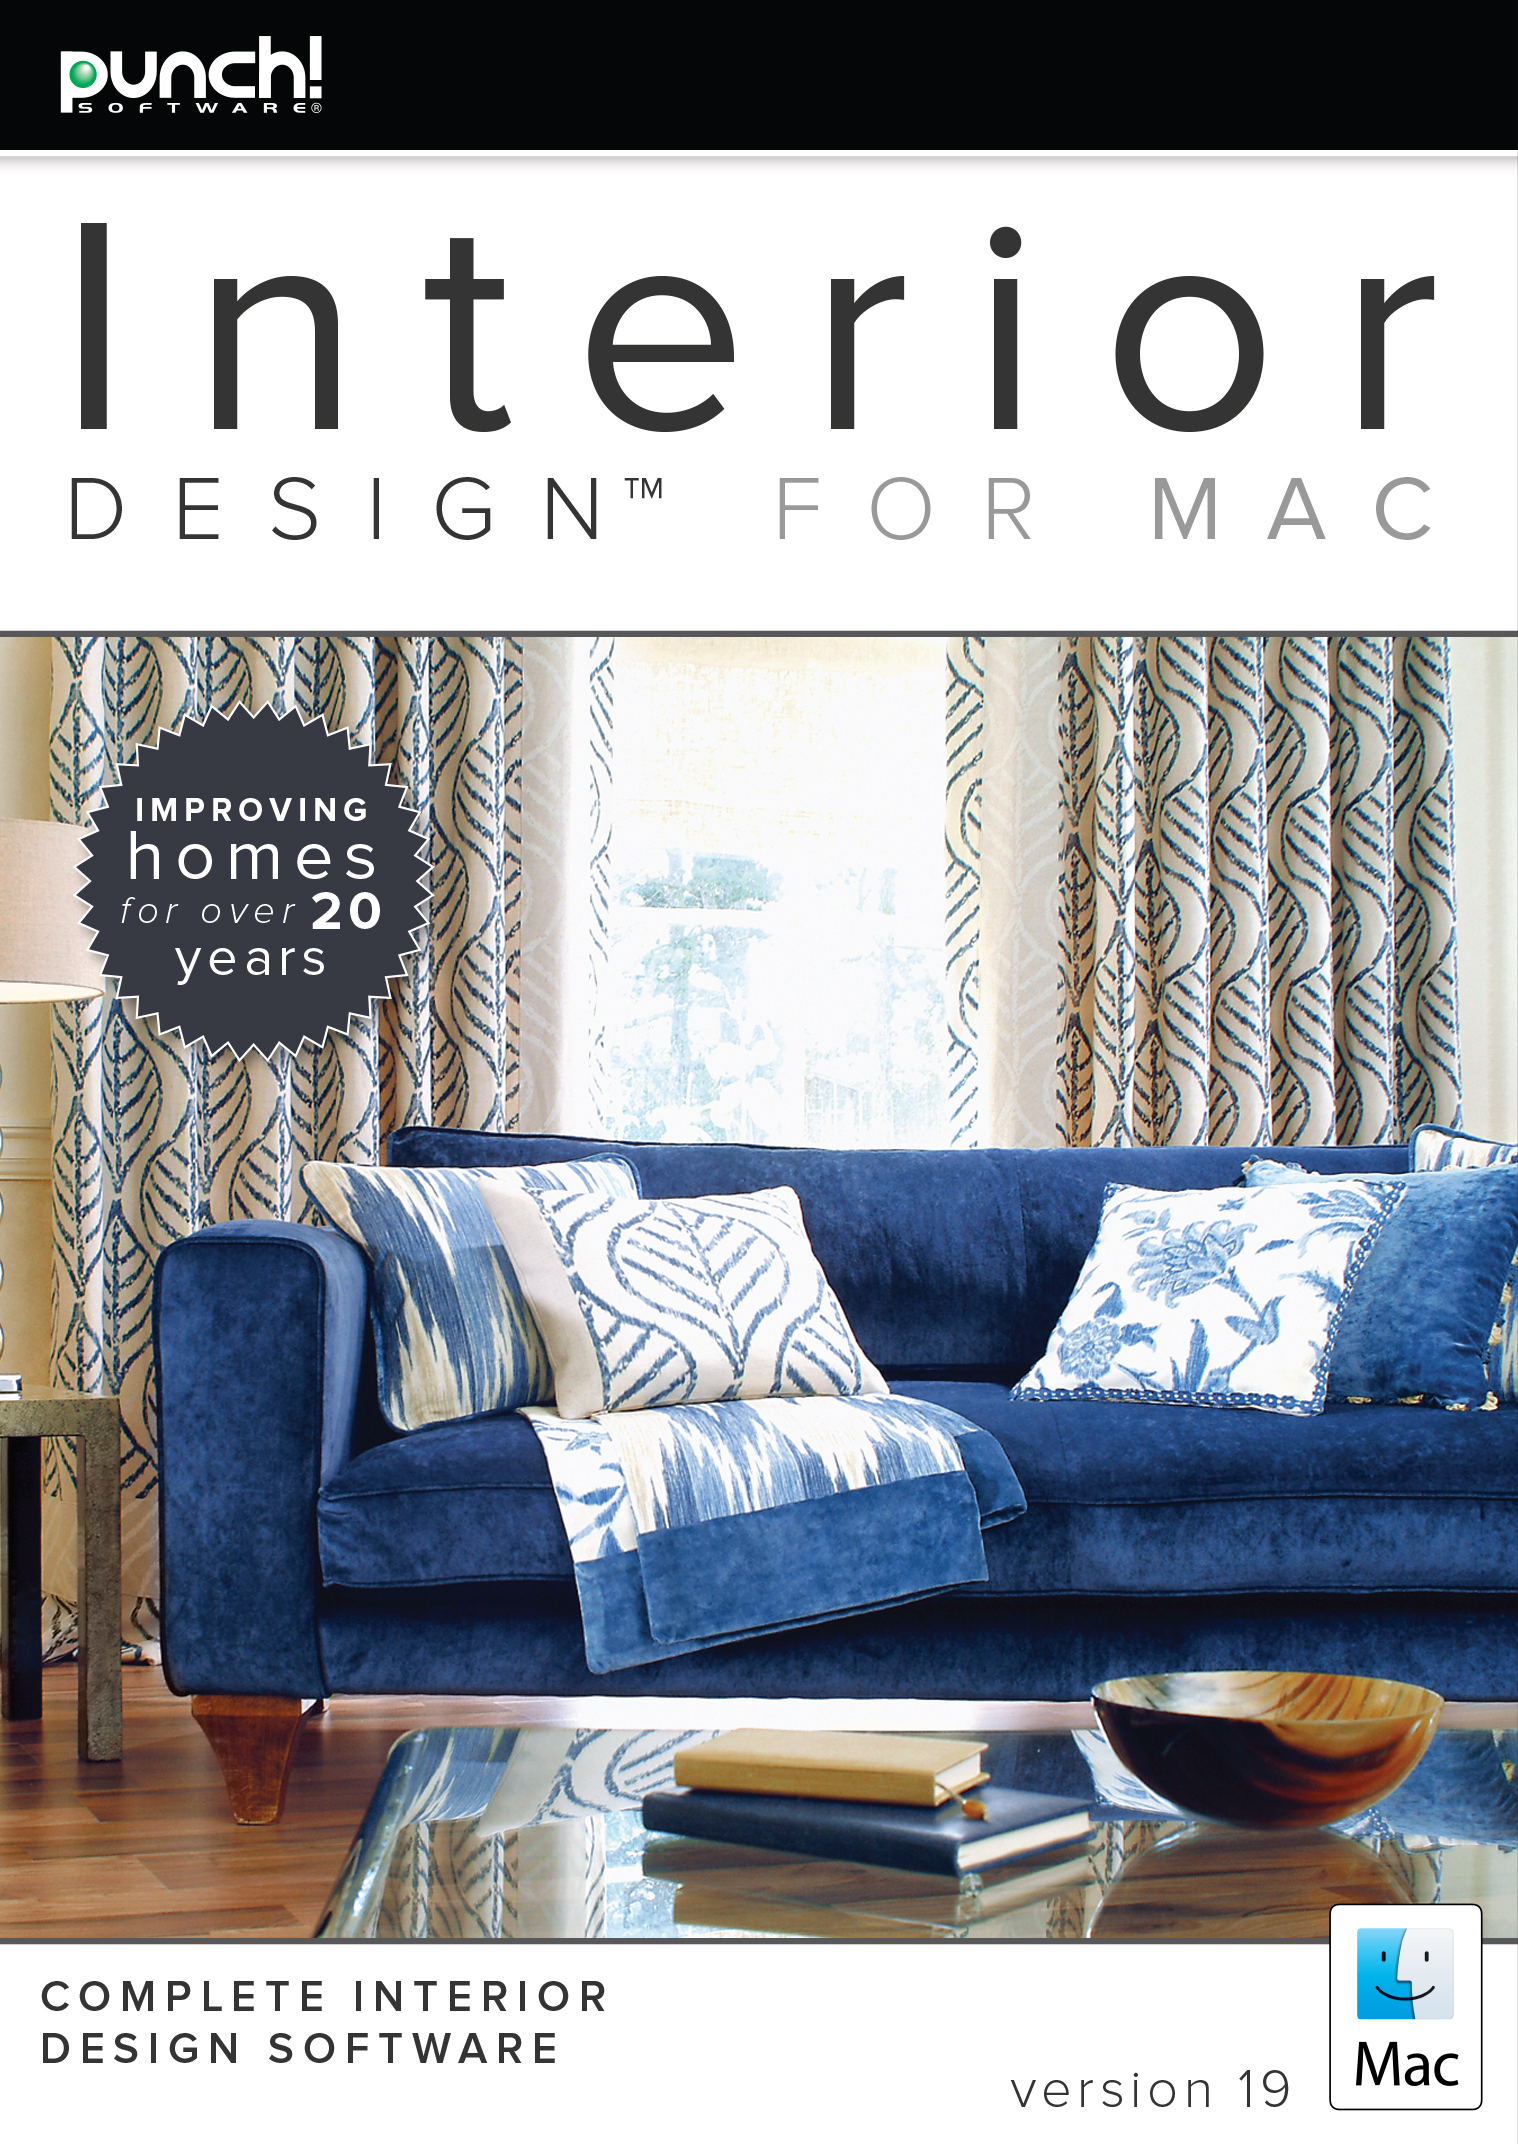 Amazon.com: Punch! Interior Design for Mac v19 [Download]: Software